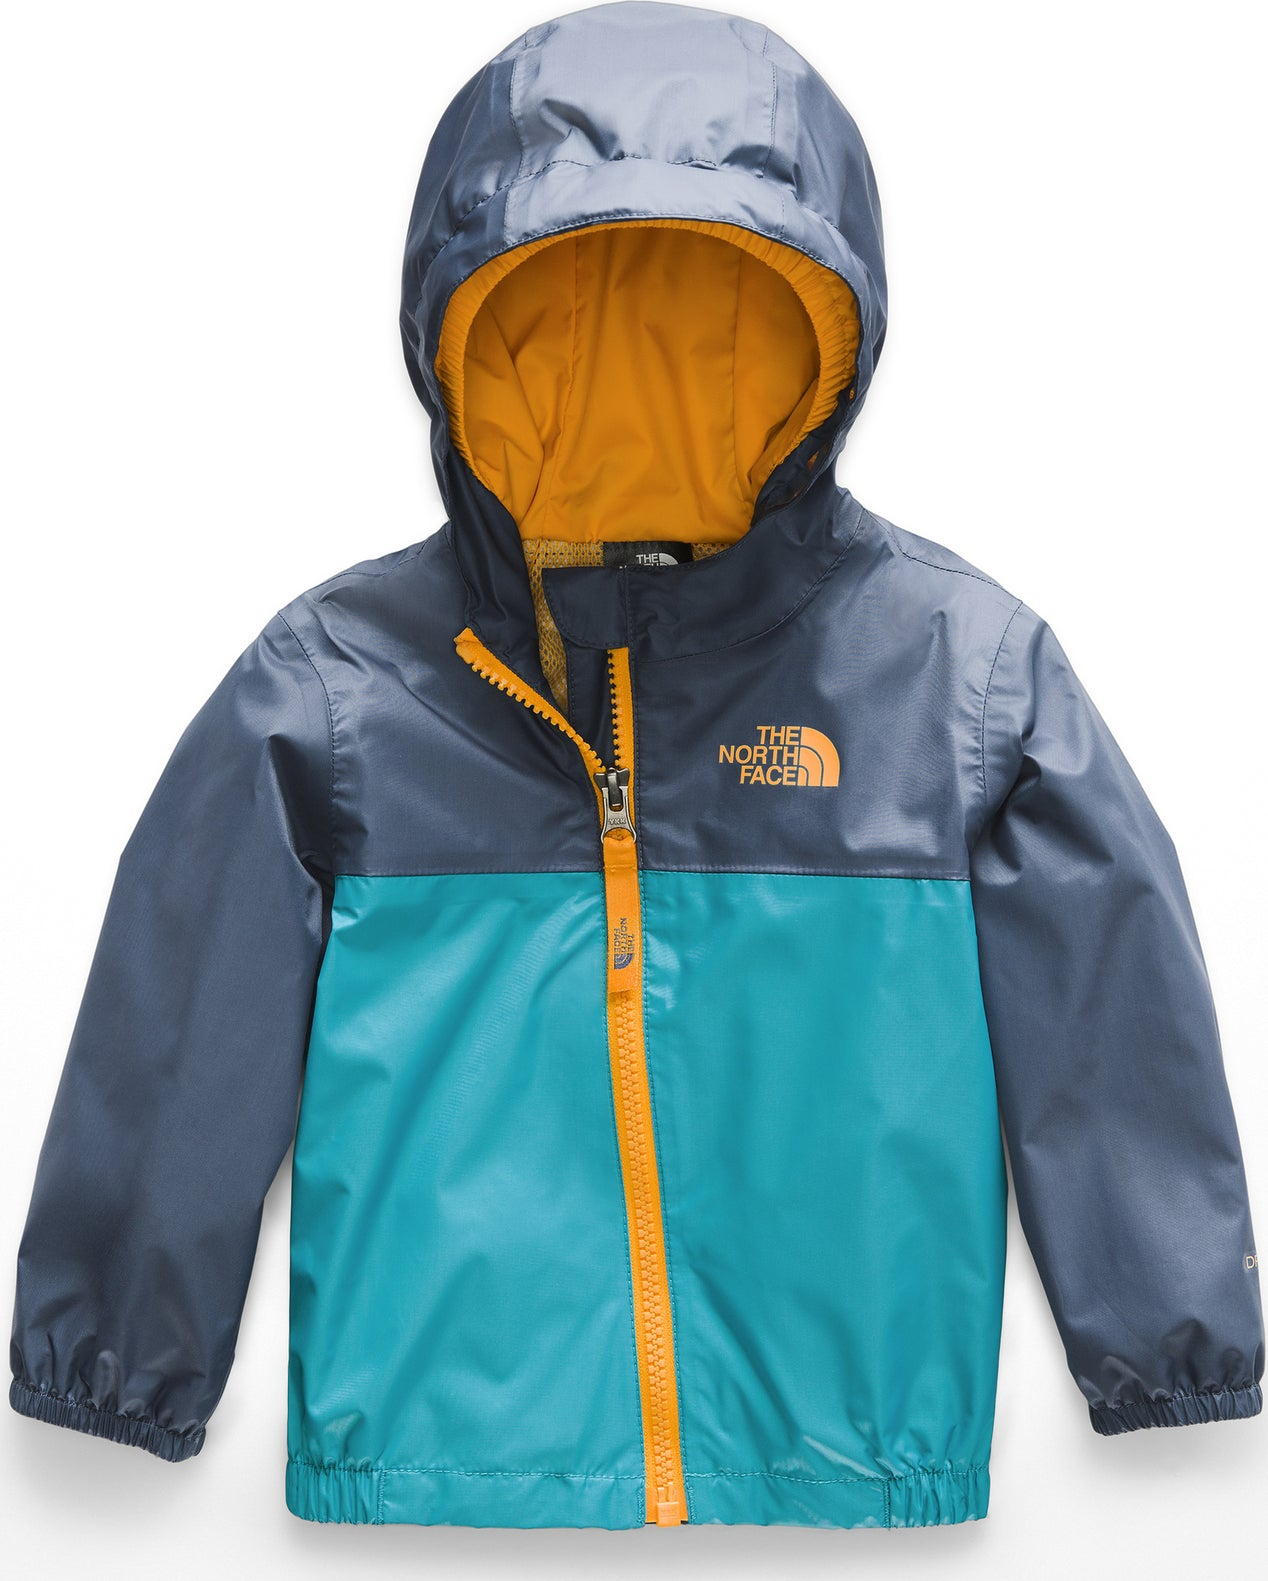 f7180c7daf33 The North Face Zipline Rain Jacket - Infant